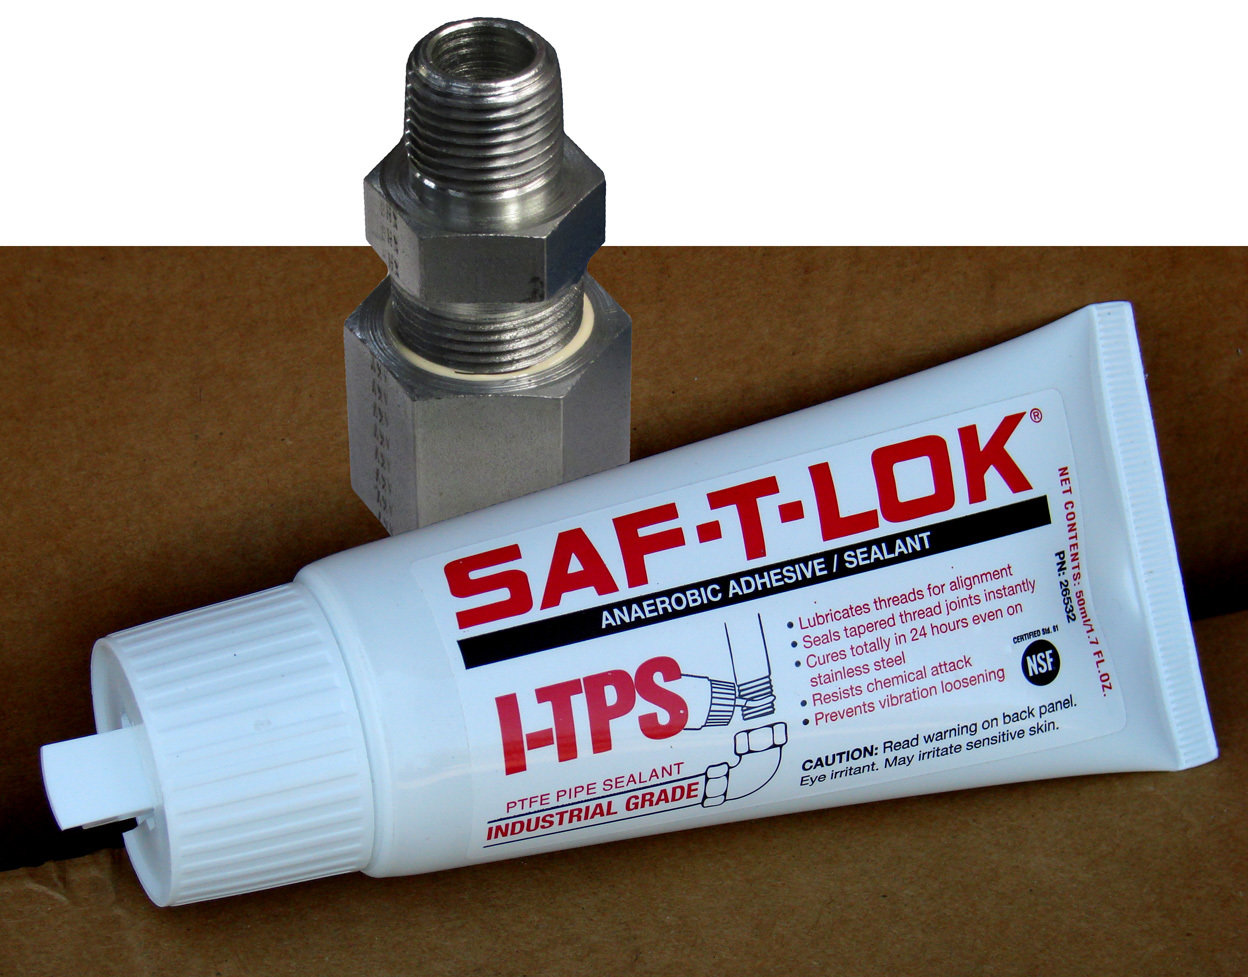 I-TPS SAF-T-LOK Thread Sealant, 50ml